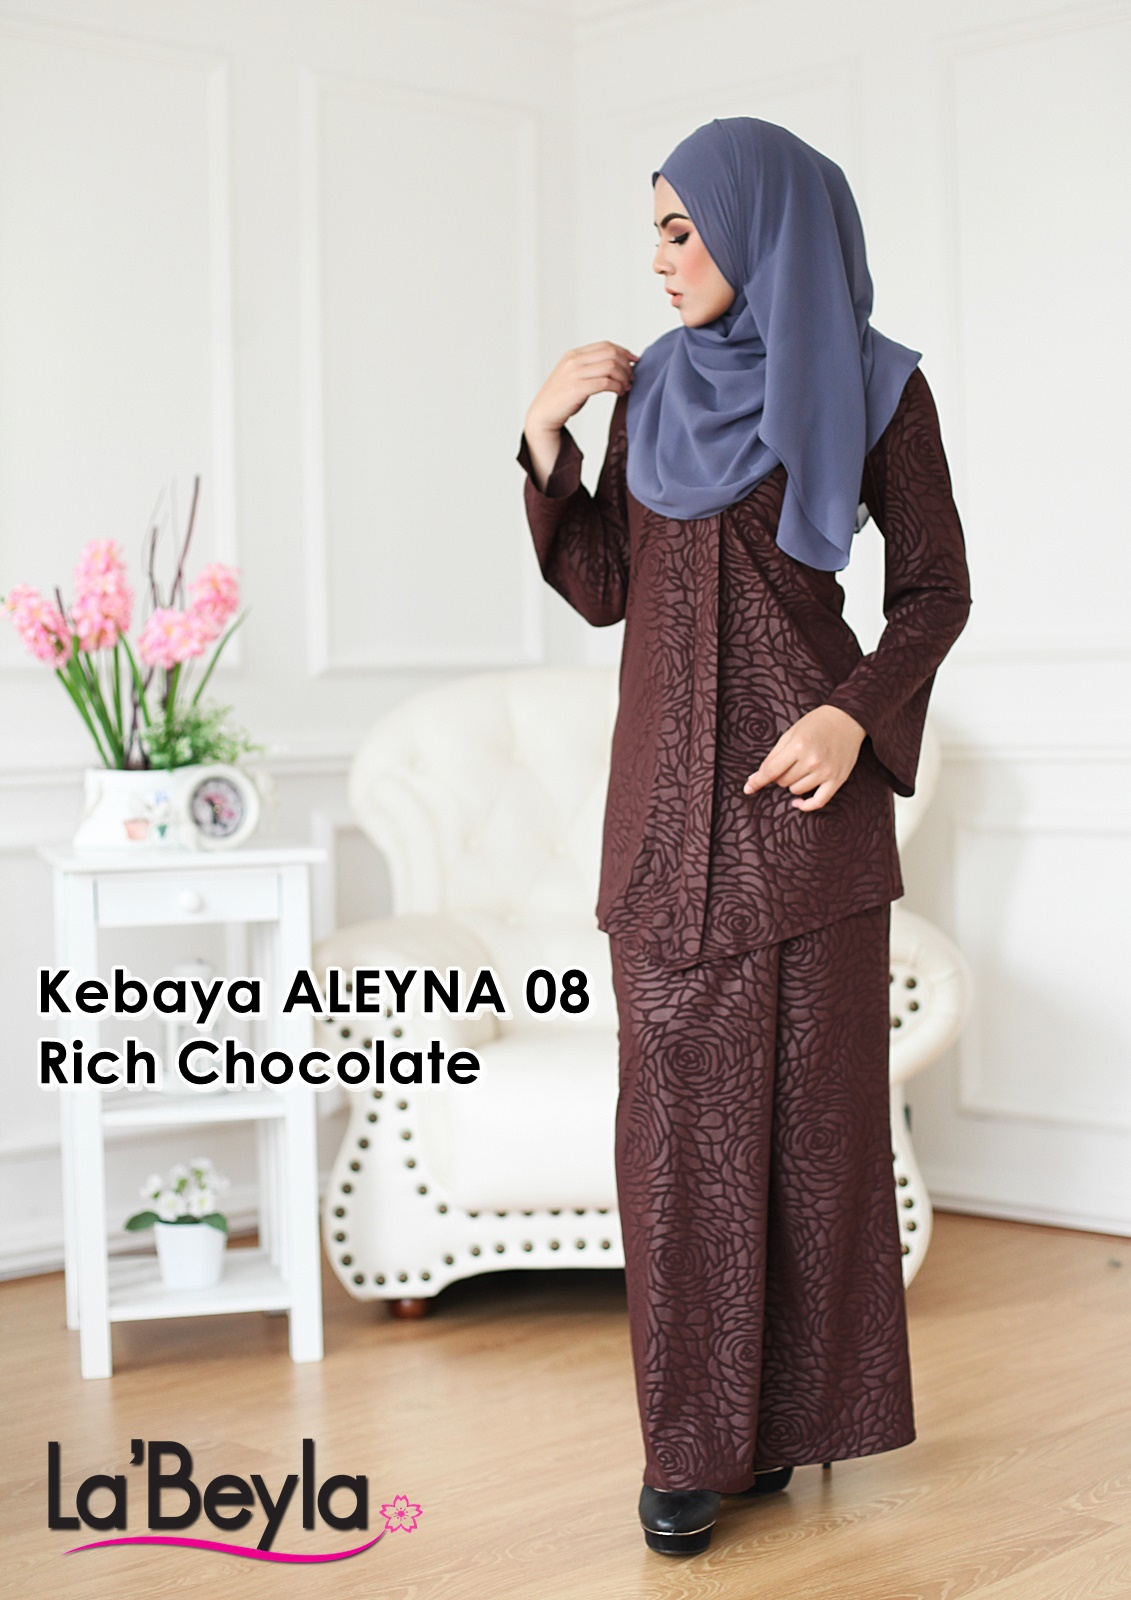 Kebaya Aleyna 08 - Rich Chocolate